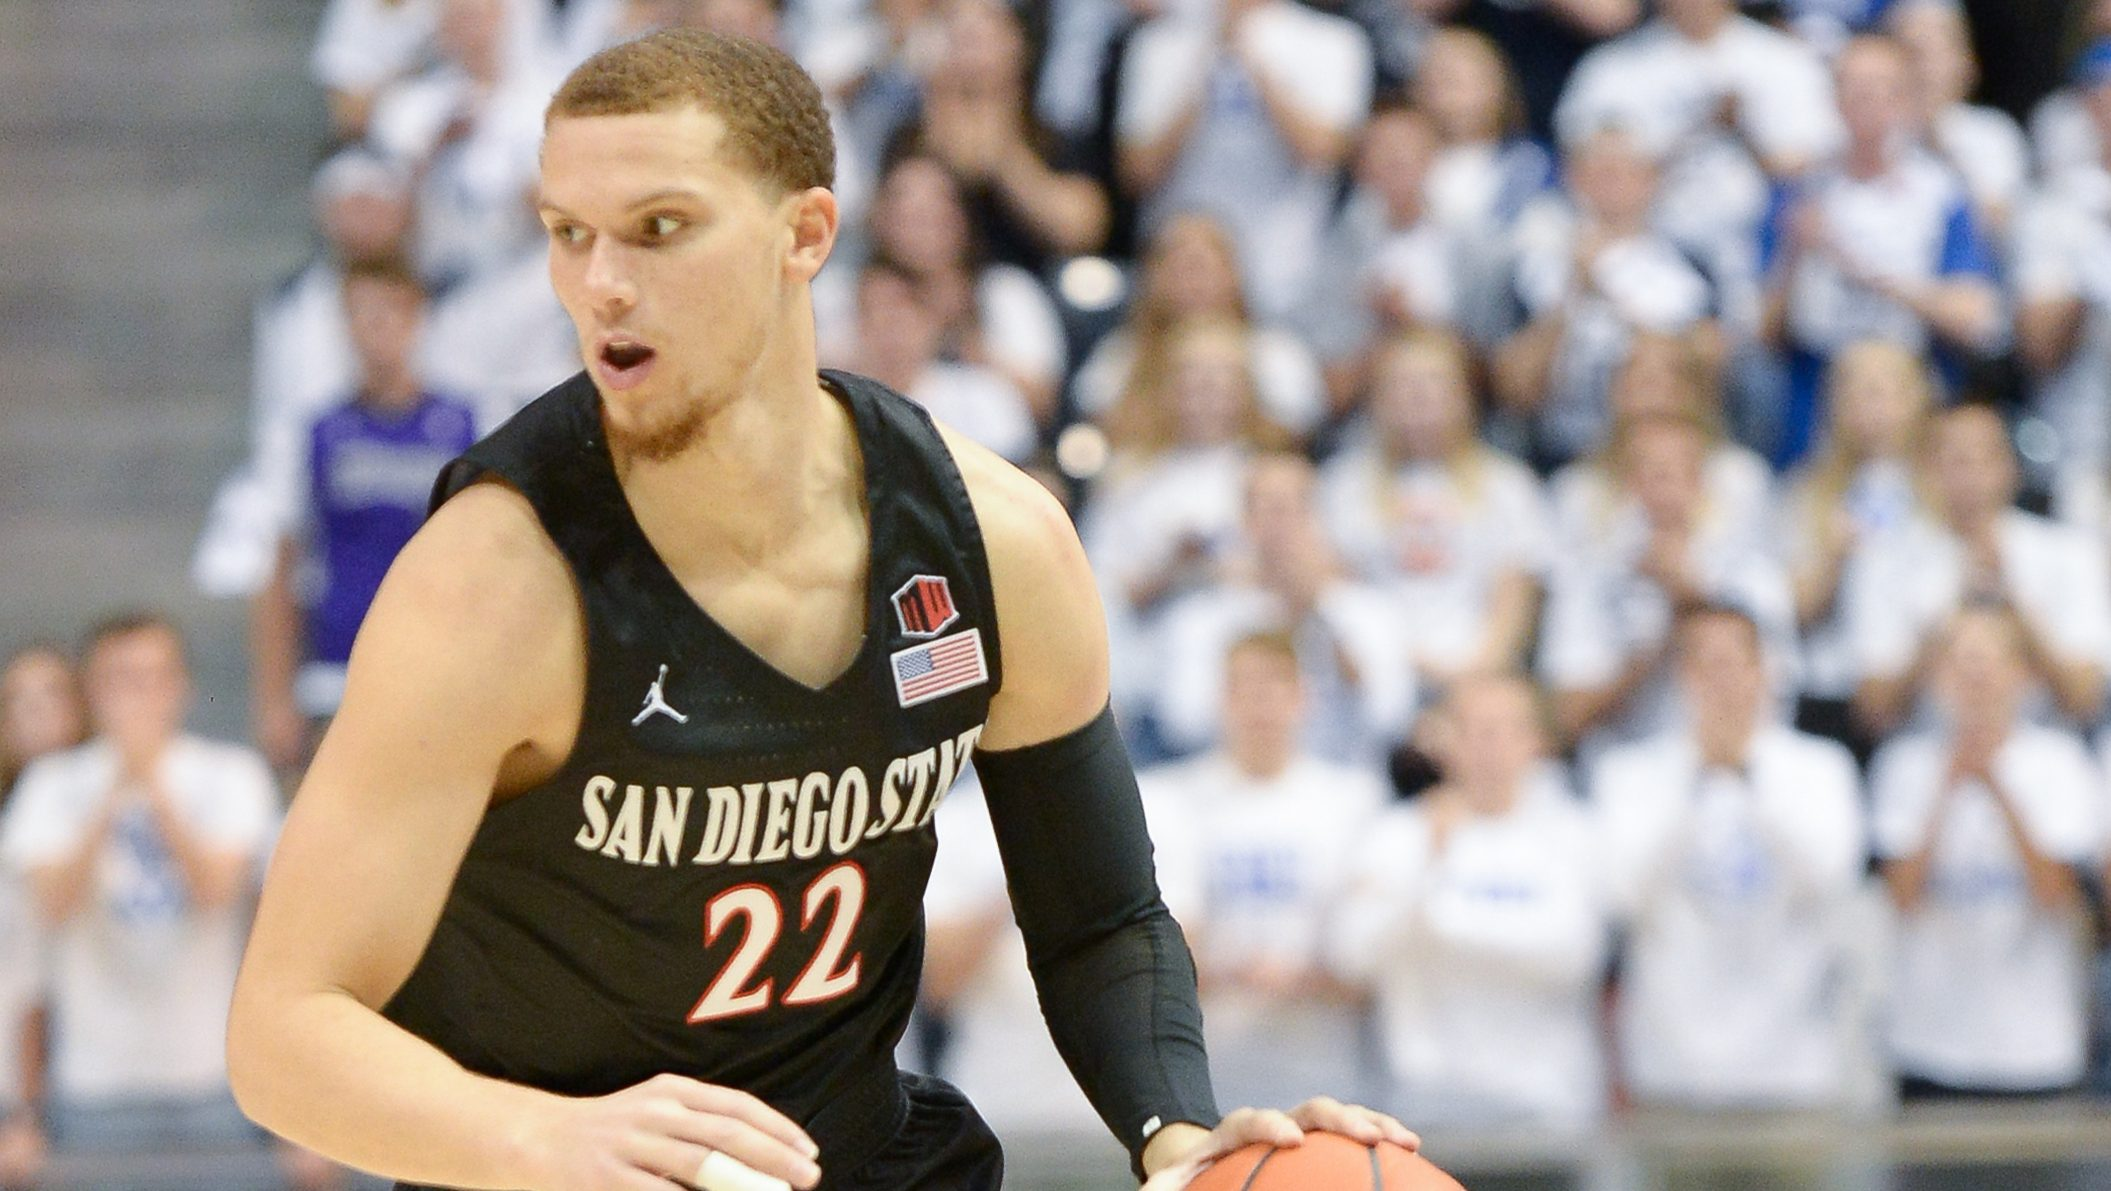 Bracketology: The top seeds remain in place